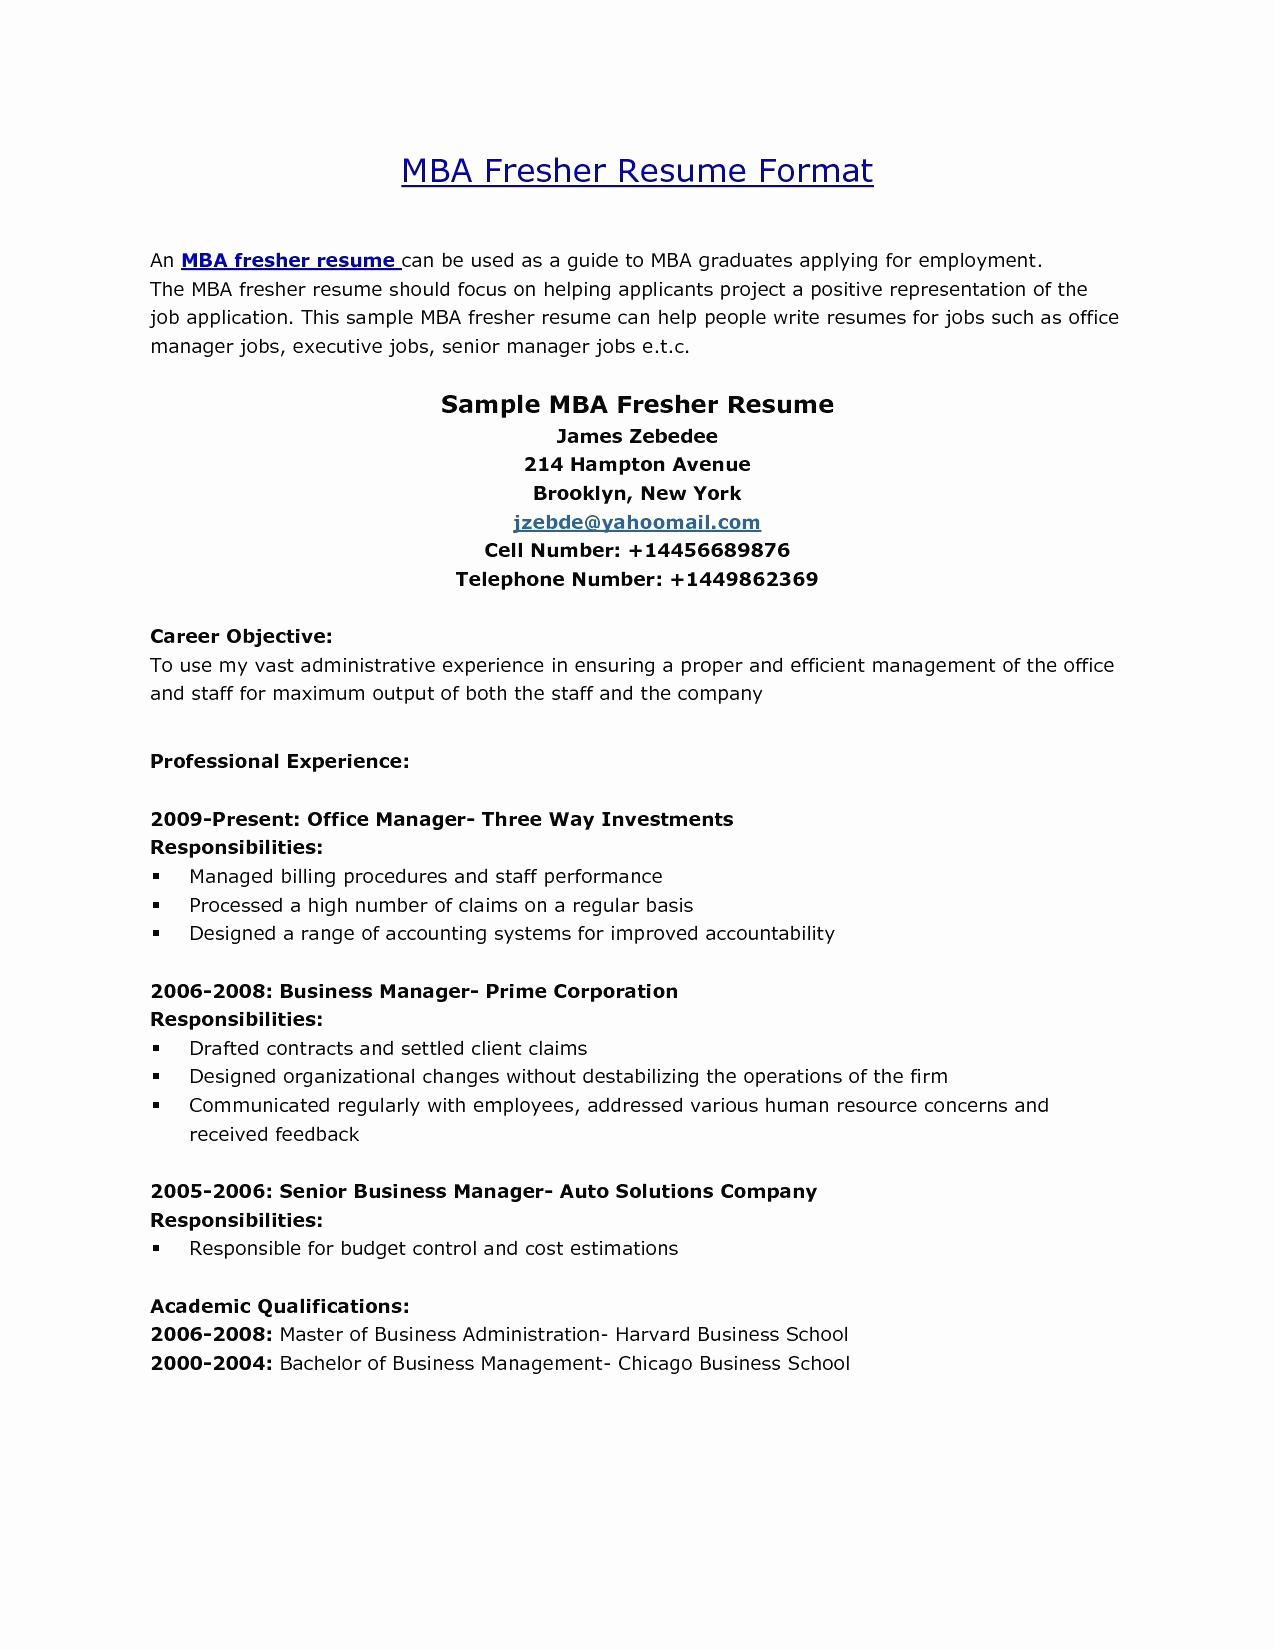 Resume Template for Mba Graduates - 46 New Mba Finance Resume Sample for Freshers Resume Templates